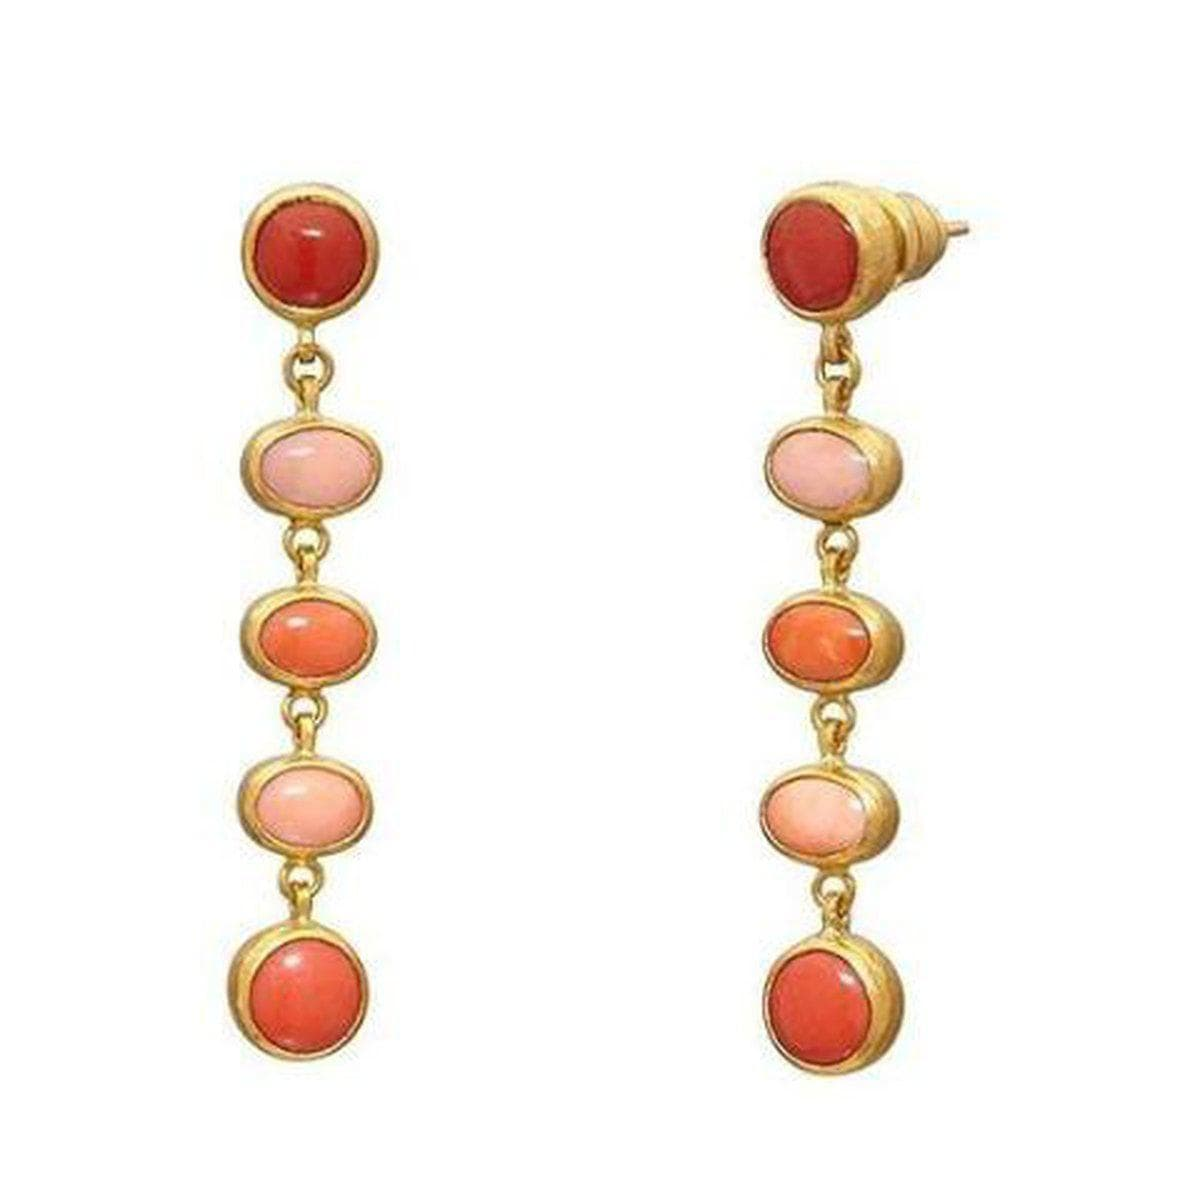 Amulet Hue 24K Gold Coral Earrings - E-U25623-CO-GURHAN-Renee Taylor Gallery